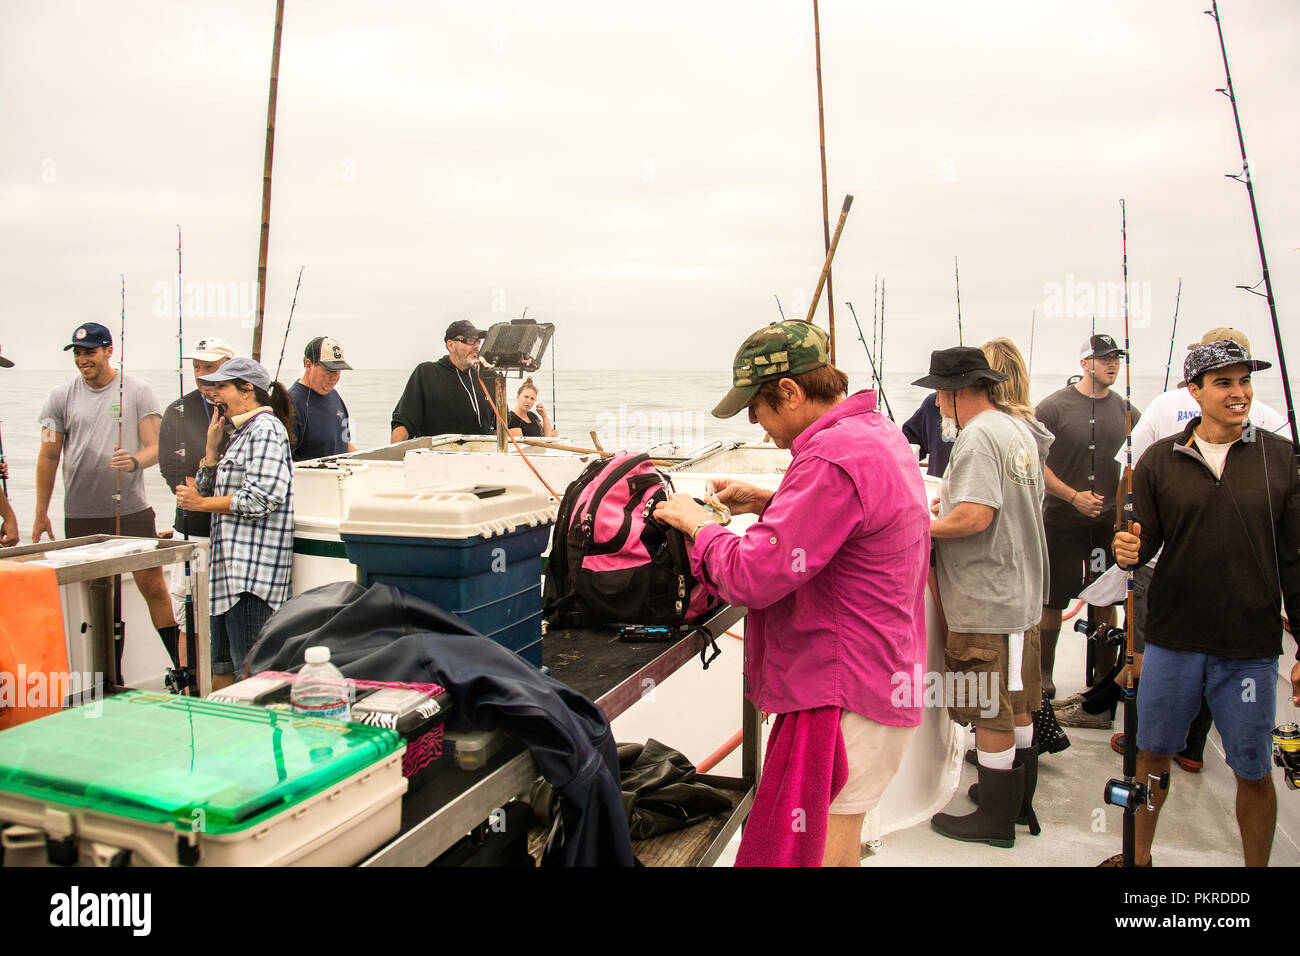 A large group of fishermen in the midst of fishing and catching fish - Stock Image